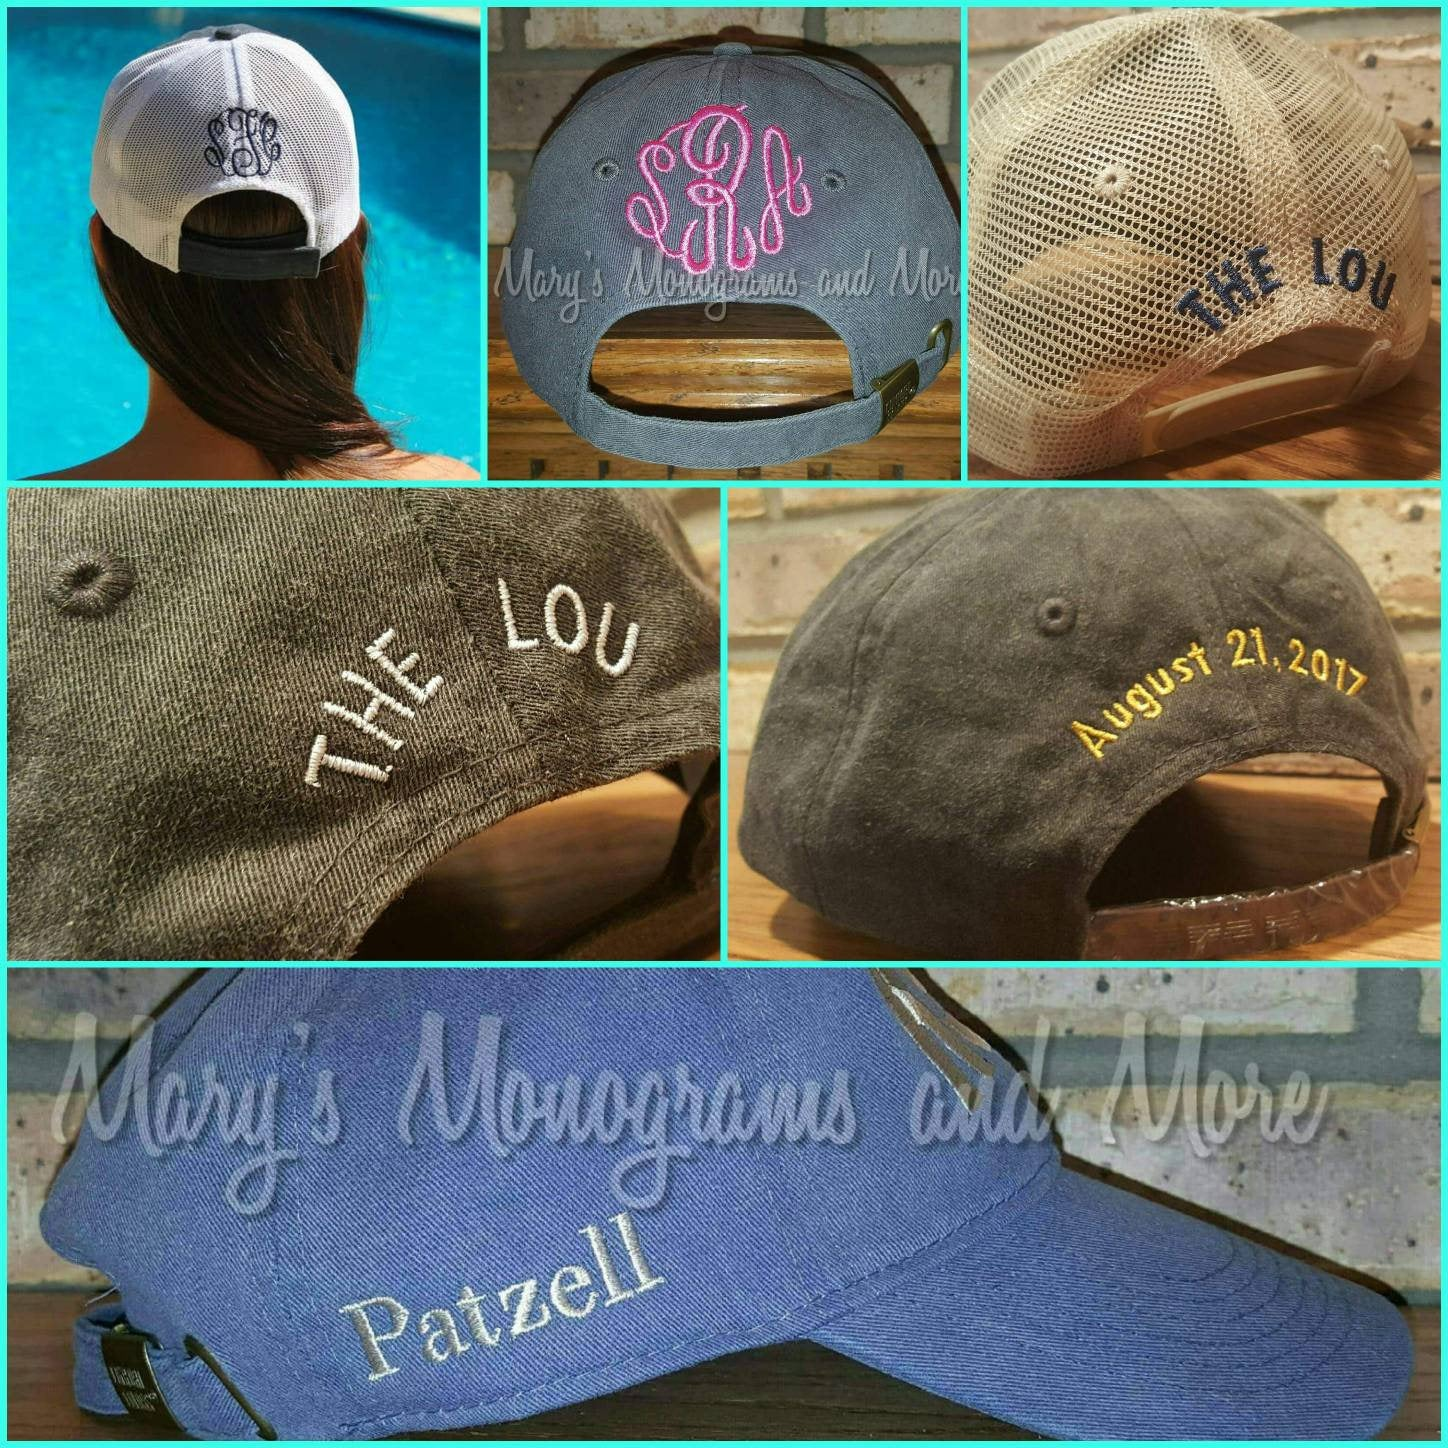 Slay Hat - Embroidered Slayer, Slay All Day, I Slay Baseball Hat, Can be personalized or monogrammed